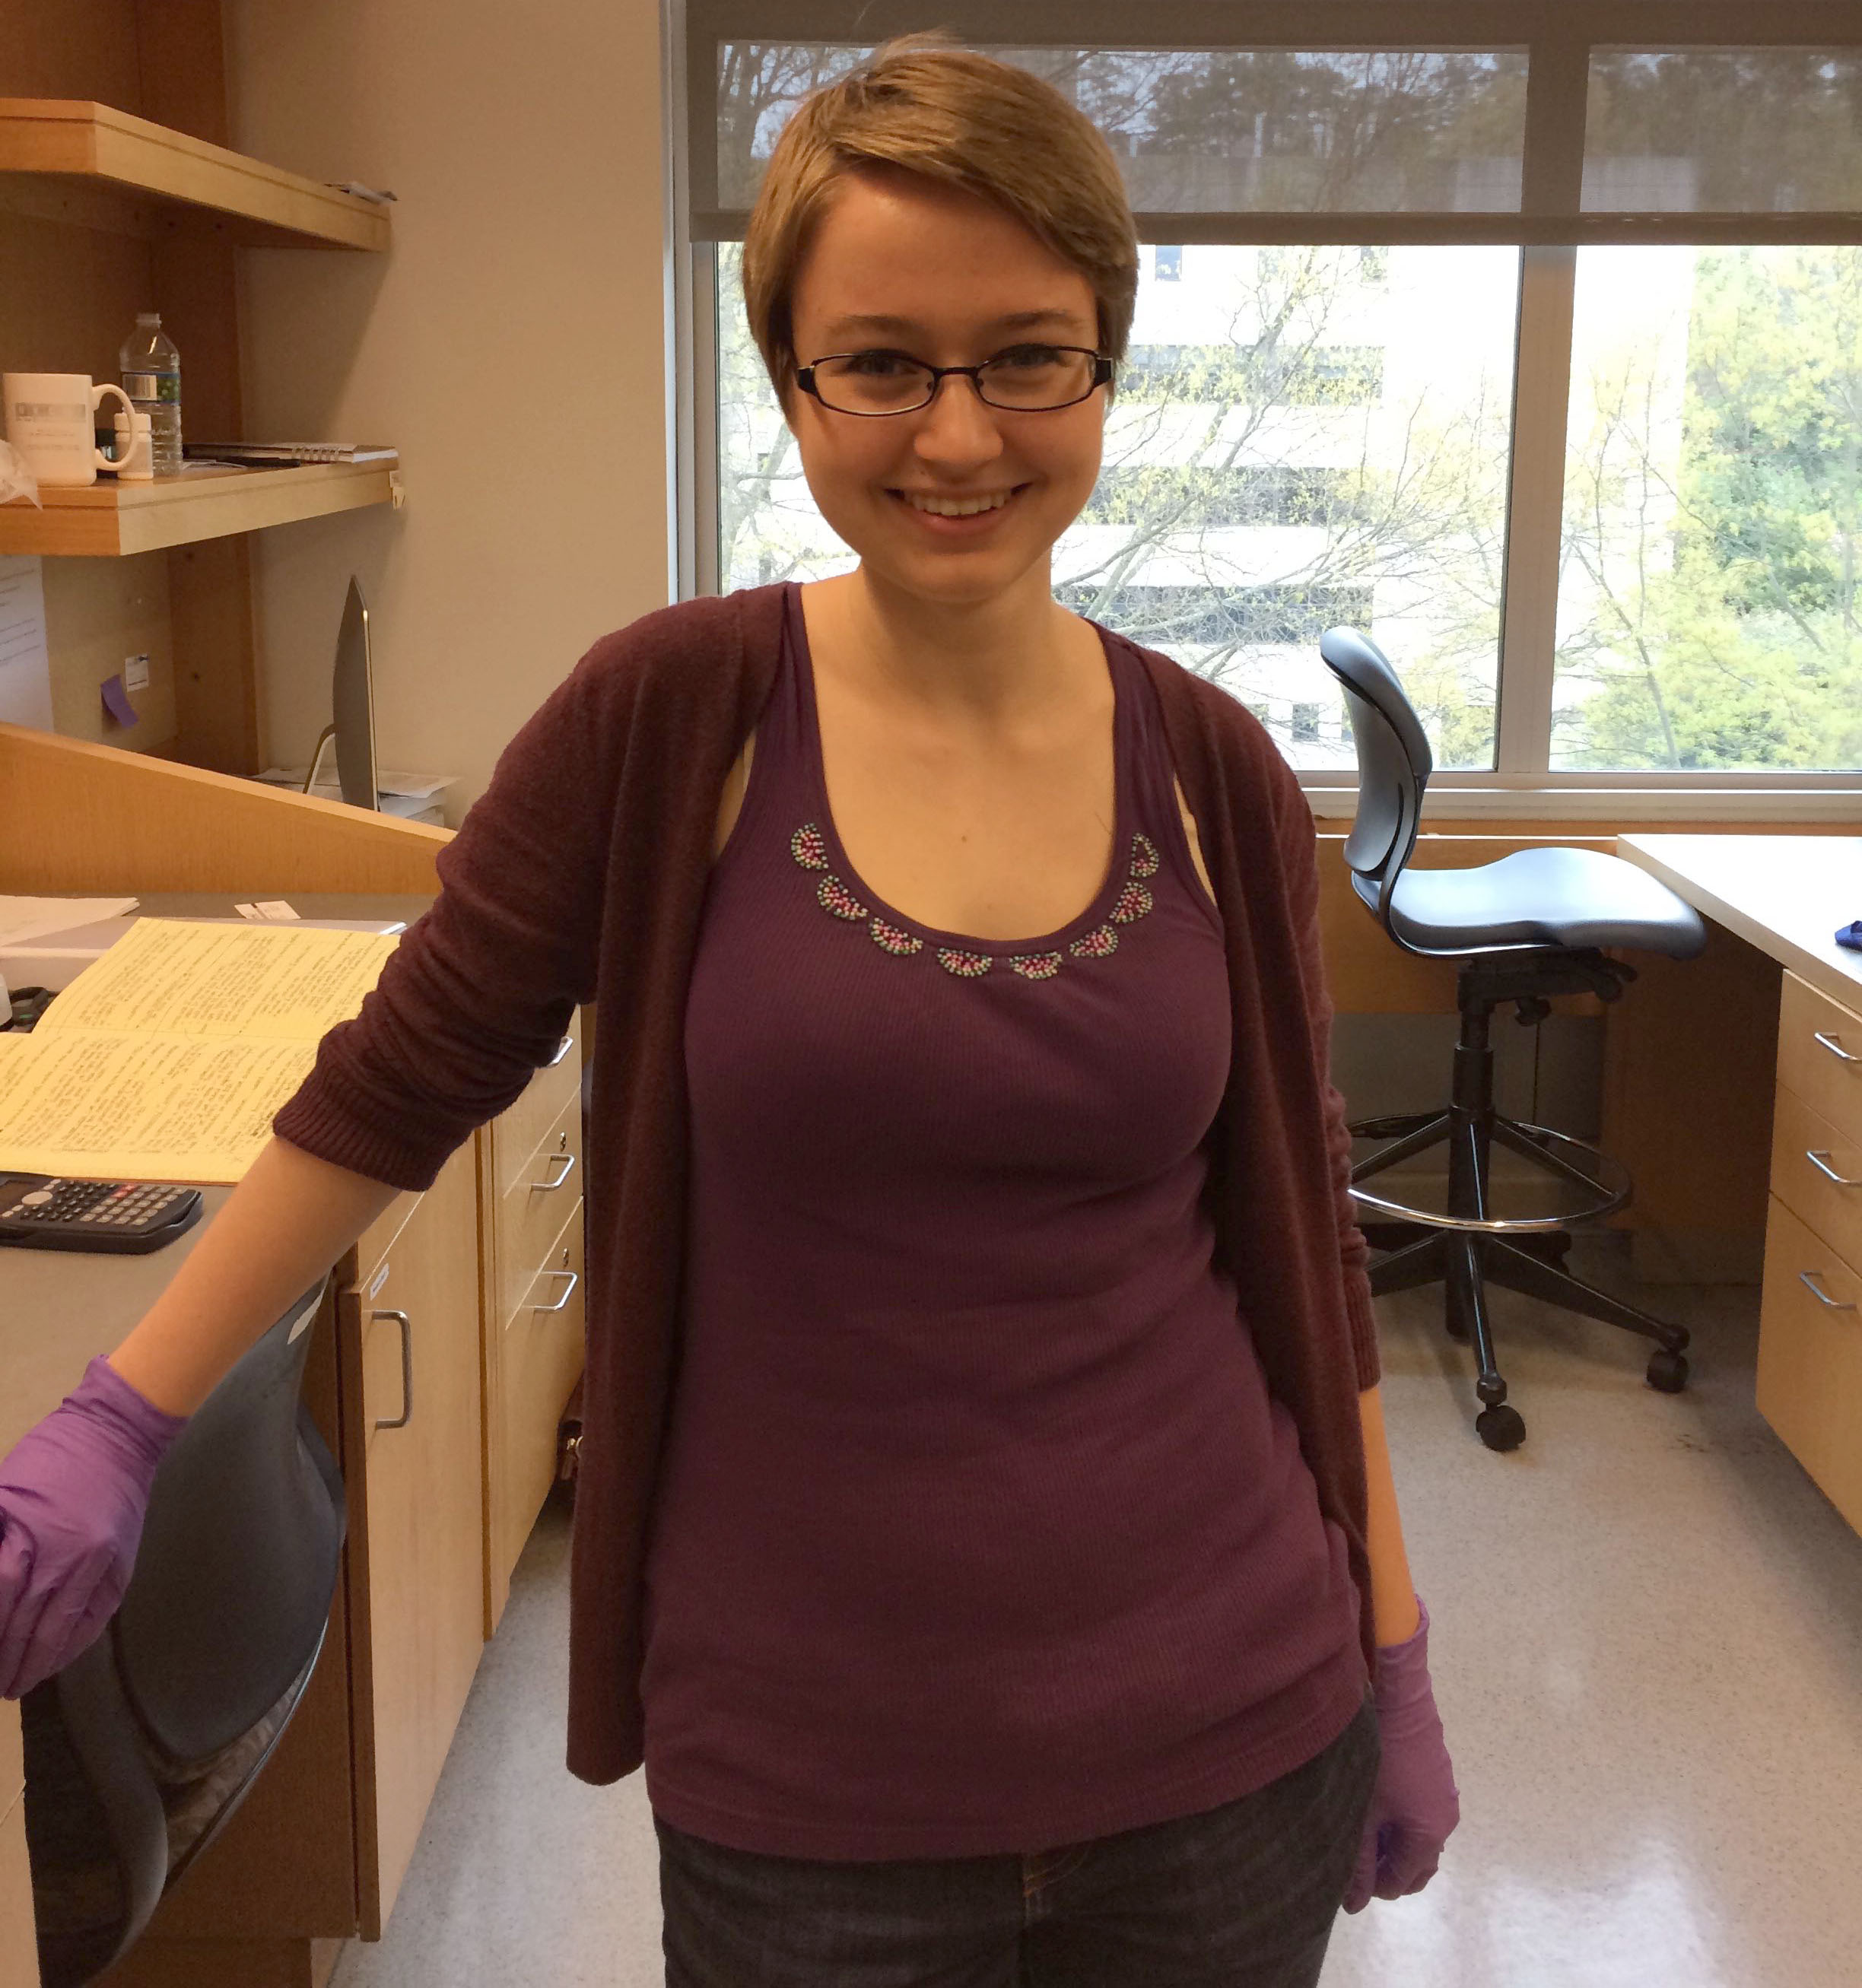 Chloe Barrington-Ham, Research Technician 2015-2018  Current Position: PhD Student, Graduate Program in Molecular Biology, University of Colorado Anschutz Medical Campus